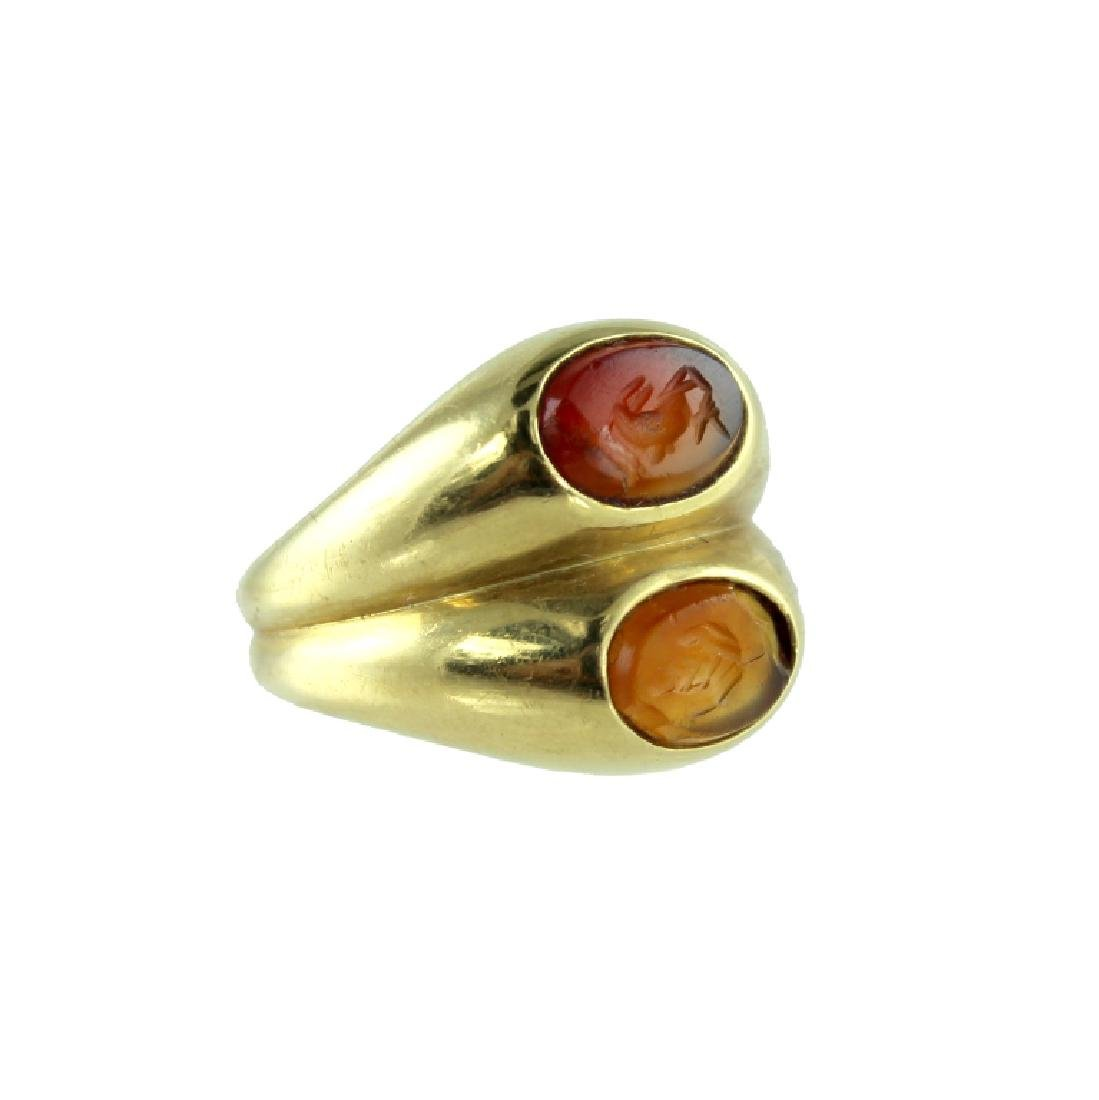 Mid Modern 18K Yellow Gold Bulgari Intaglio Ring